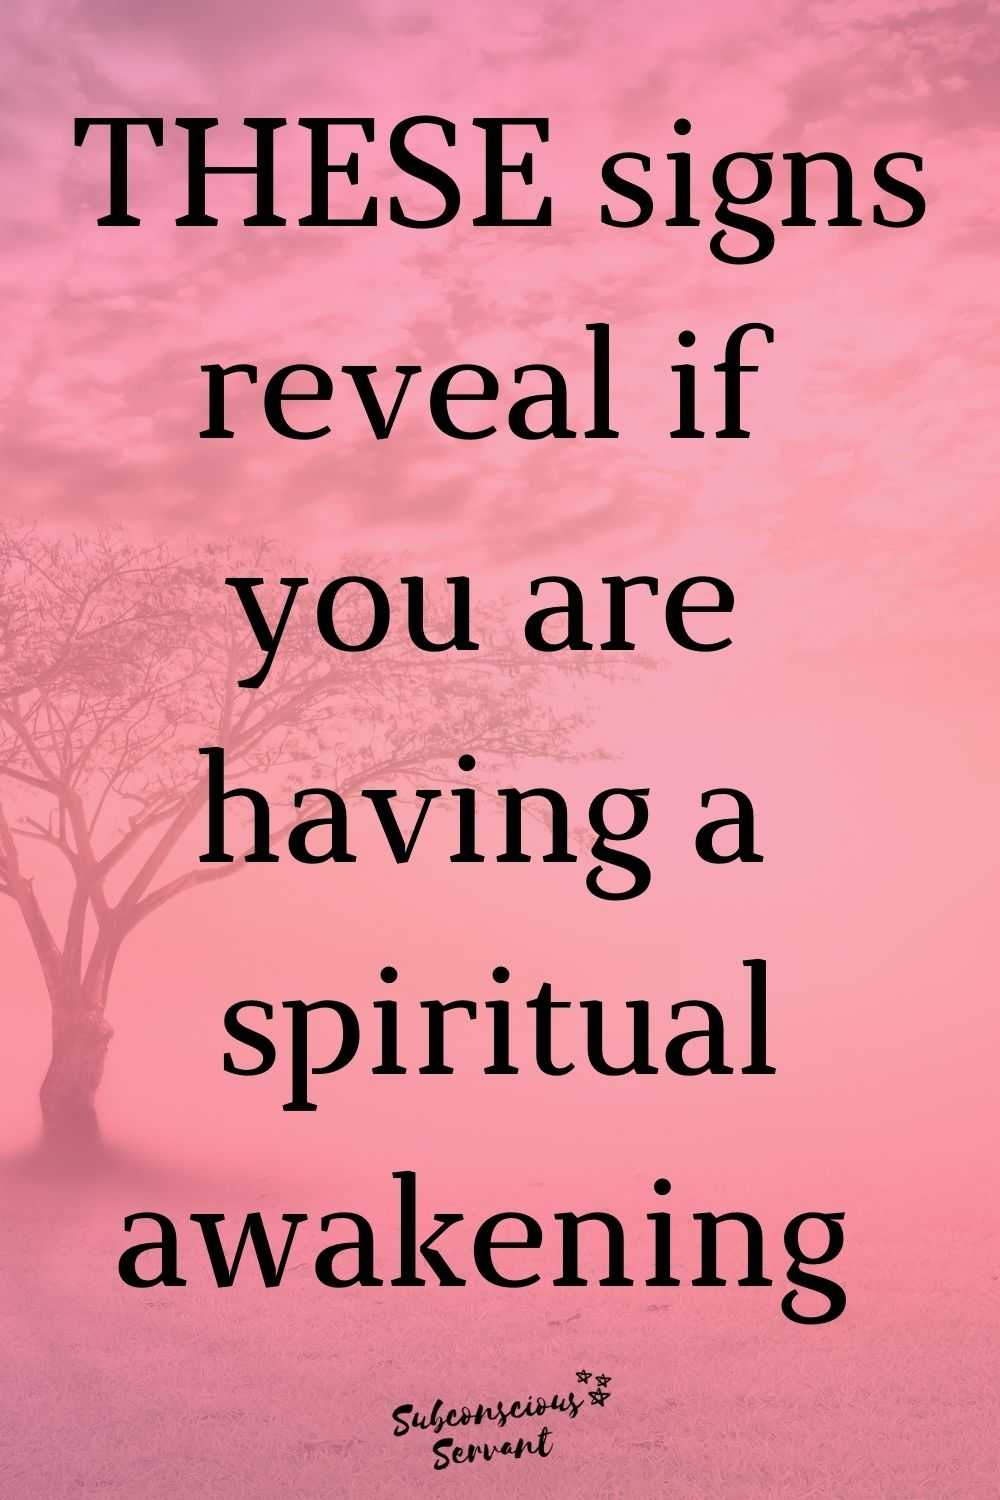 13 Spiritual Awakening Signs (Which Ones Have You Experienced?)